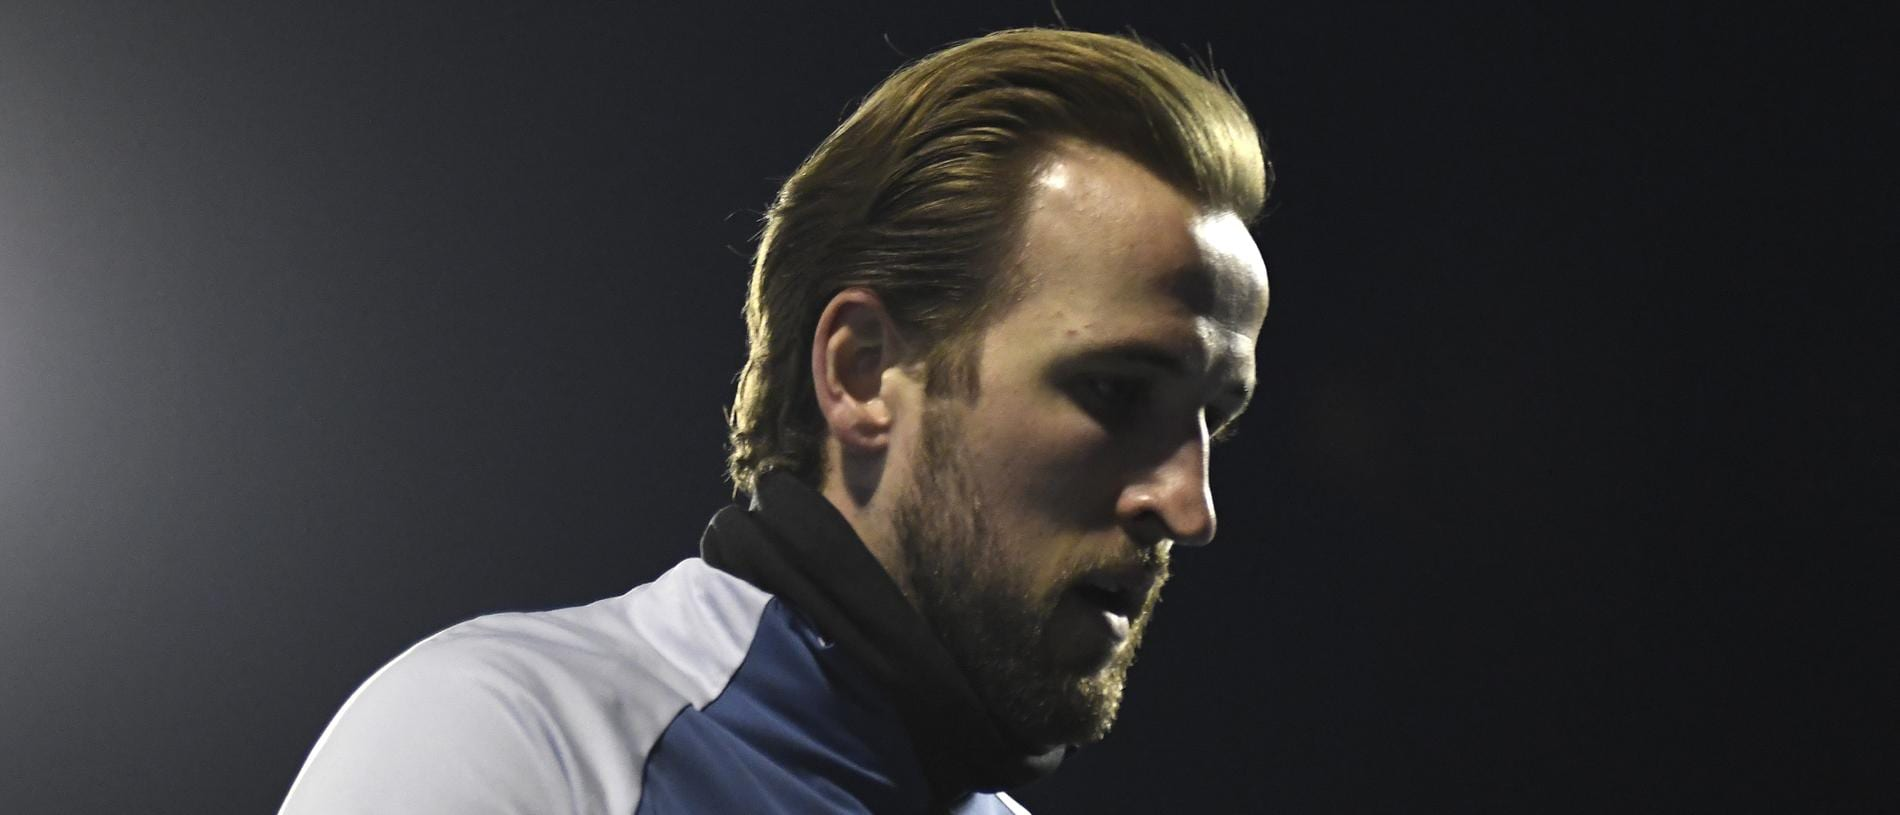 ZAGREB, CROATIA - MARCH 18: Harry Kane of Tottenham Hotspur looks on prior to the UEFA Europa League Round of 16 Second Leg match between Dinamo Zagreb and Tottenham Hotspur at Stadion Maksimir on March 18, 2021 in Zagreb, Croatia. Sporting stadiums around Europe remain under strict restrictions due to the Coronavirus Pandemic as Government social distancing laws prohibit fans inside venues resulting in games being played behind closed doors. (Photo by Jurij Kodrun/Getty Images)